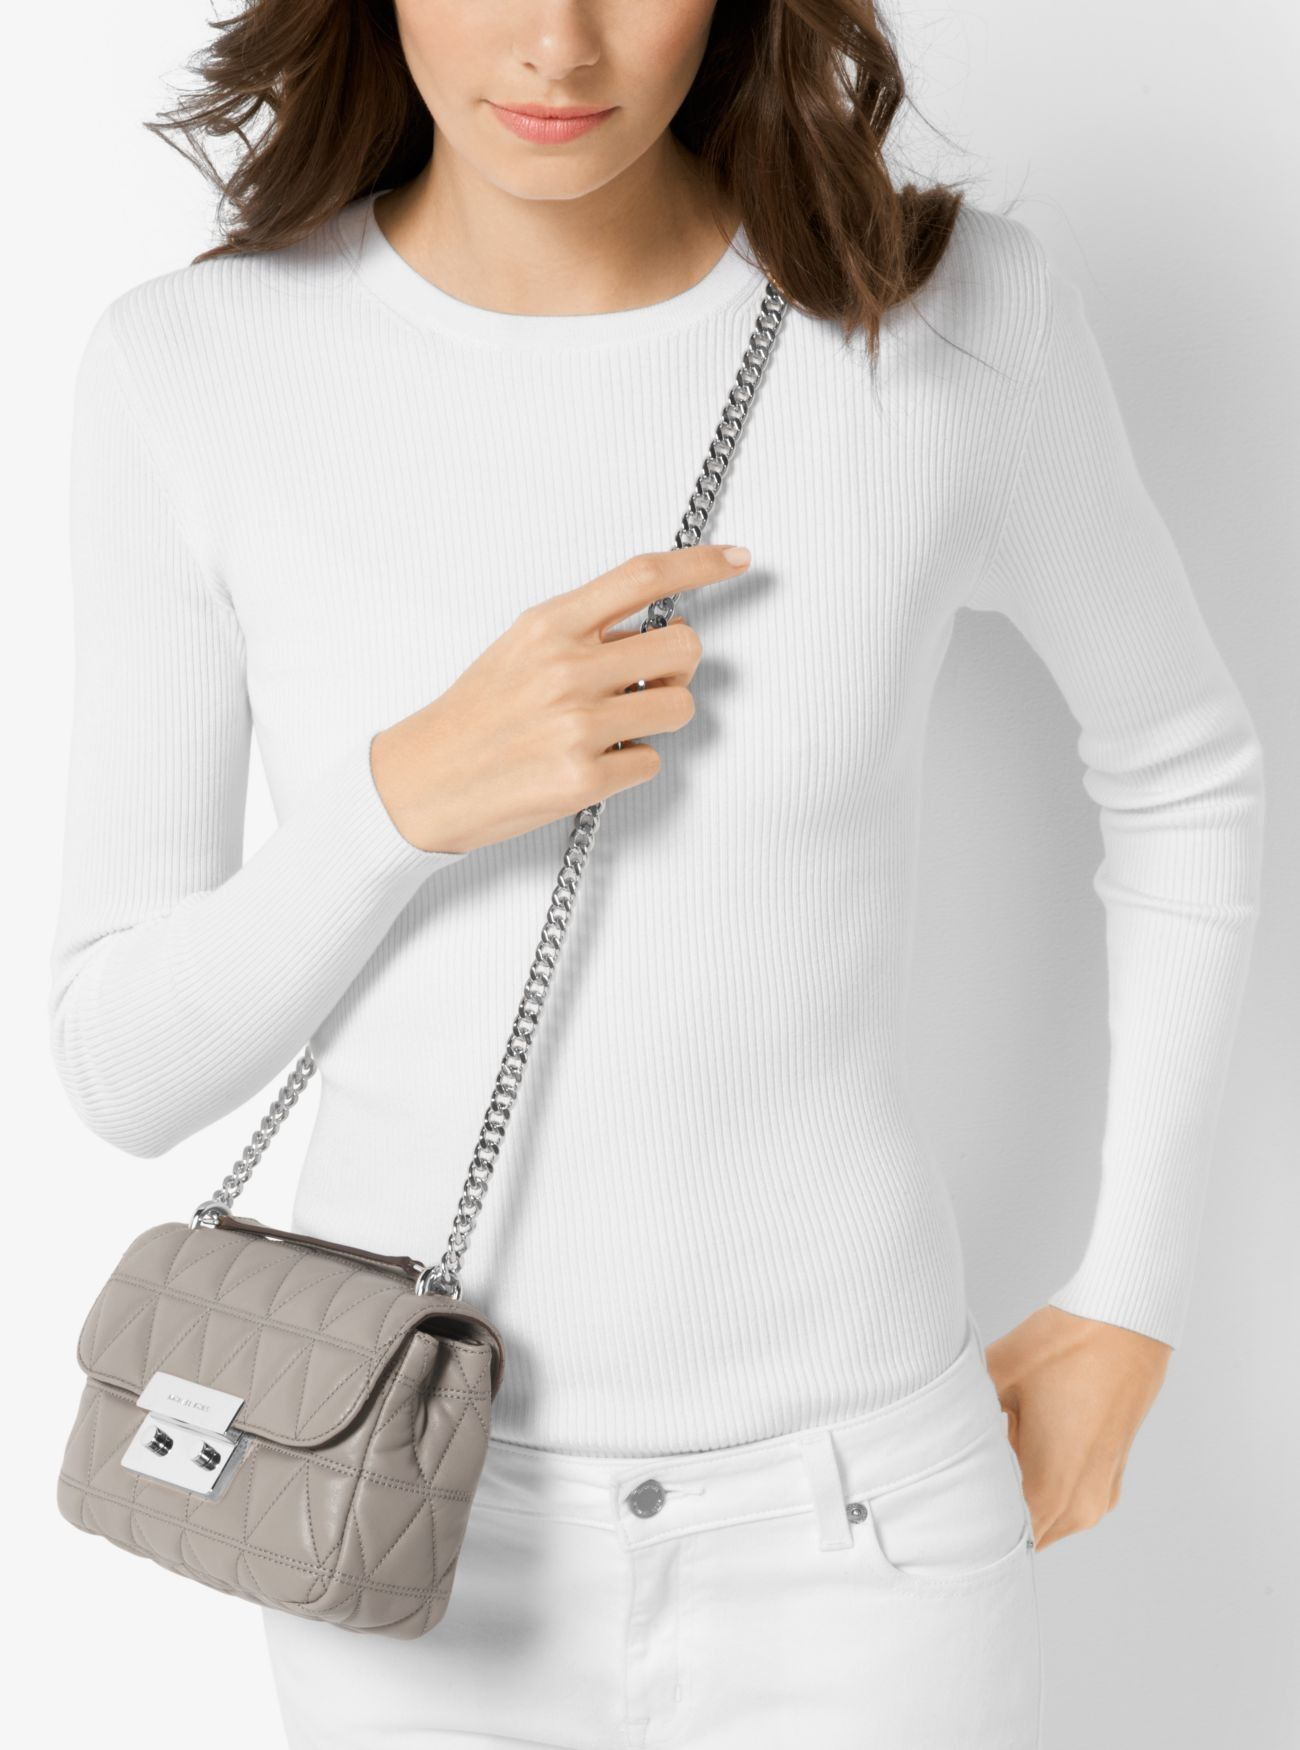 d6d8bf2c2ec8 Online Michael Kors Pearl Grey Sloan Small Quilted-Leather Shoulder Bag Sale